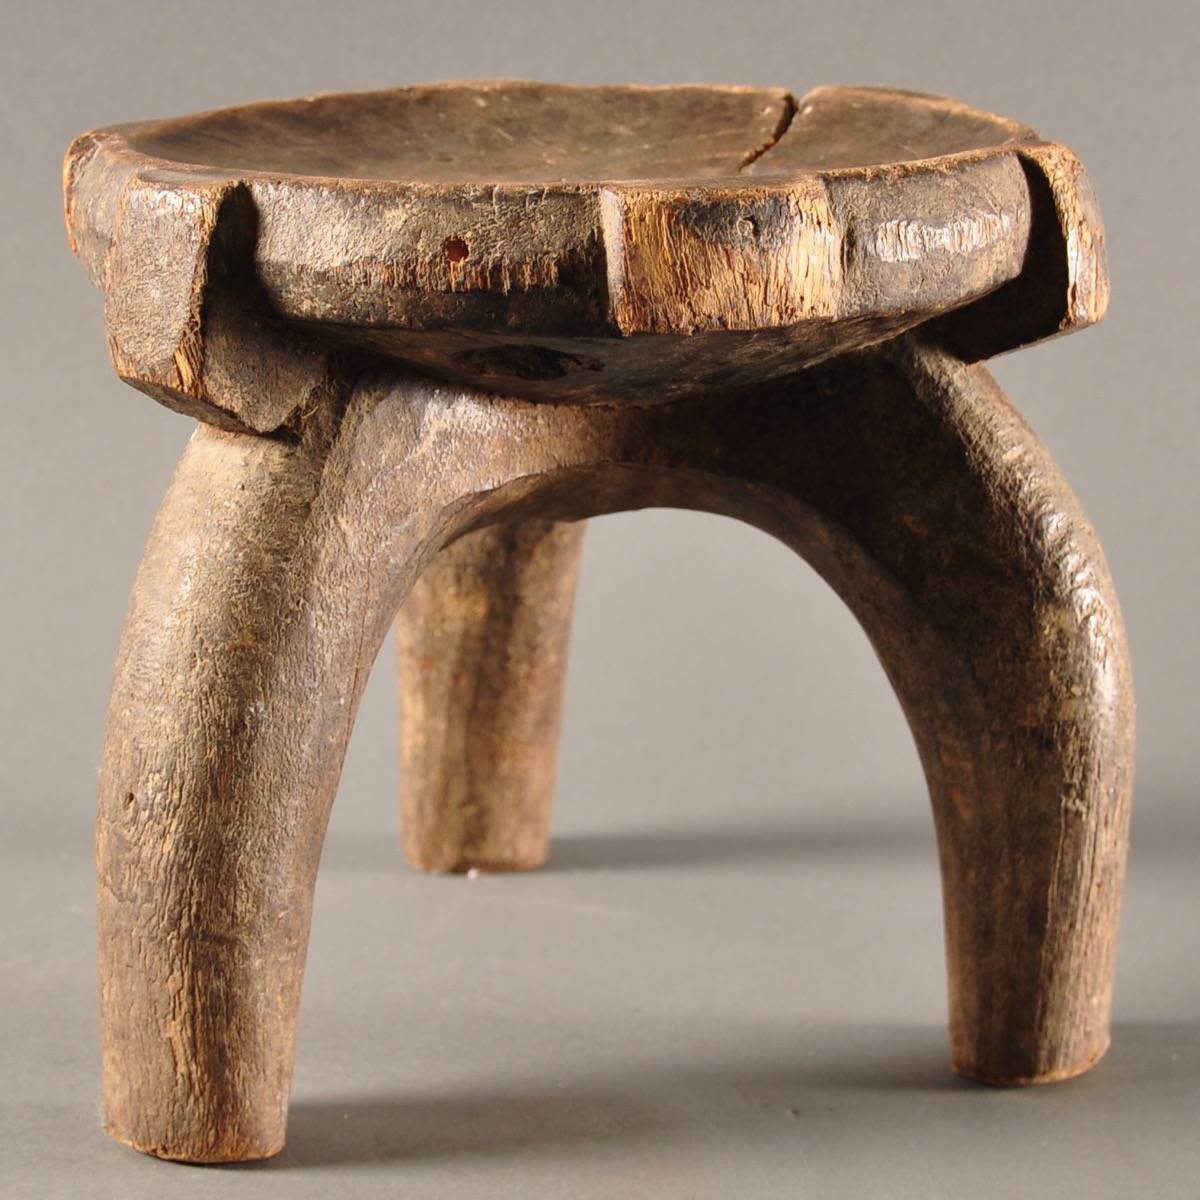 wooden sofa legs south africa pillow top communication is a three legged stool outspoken